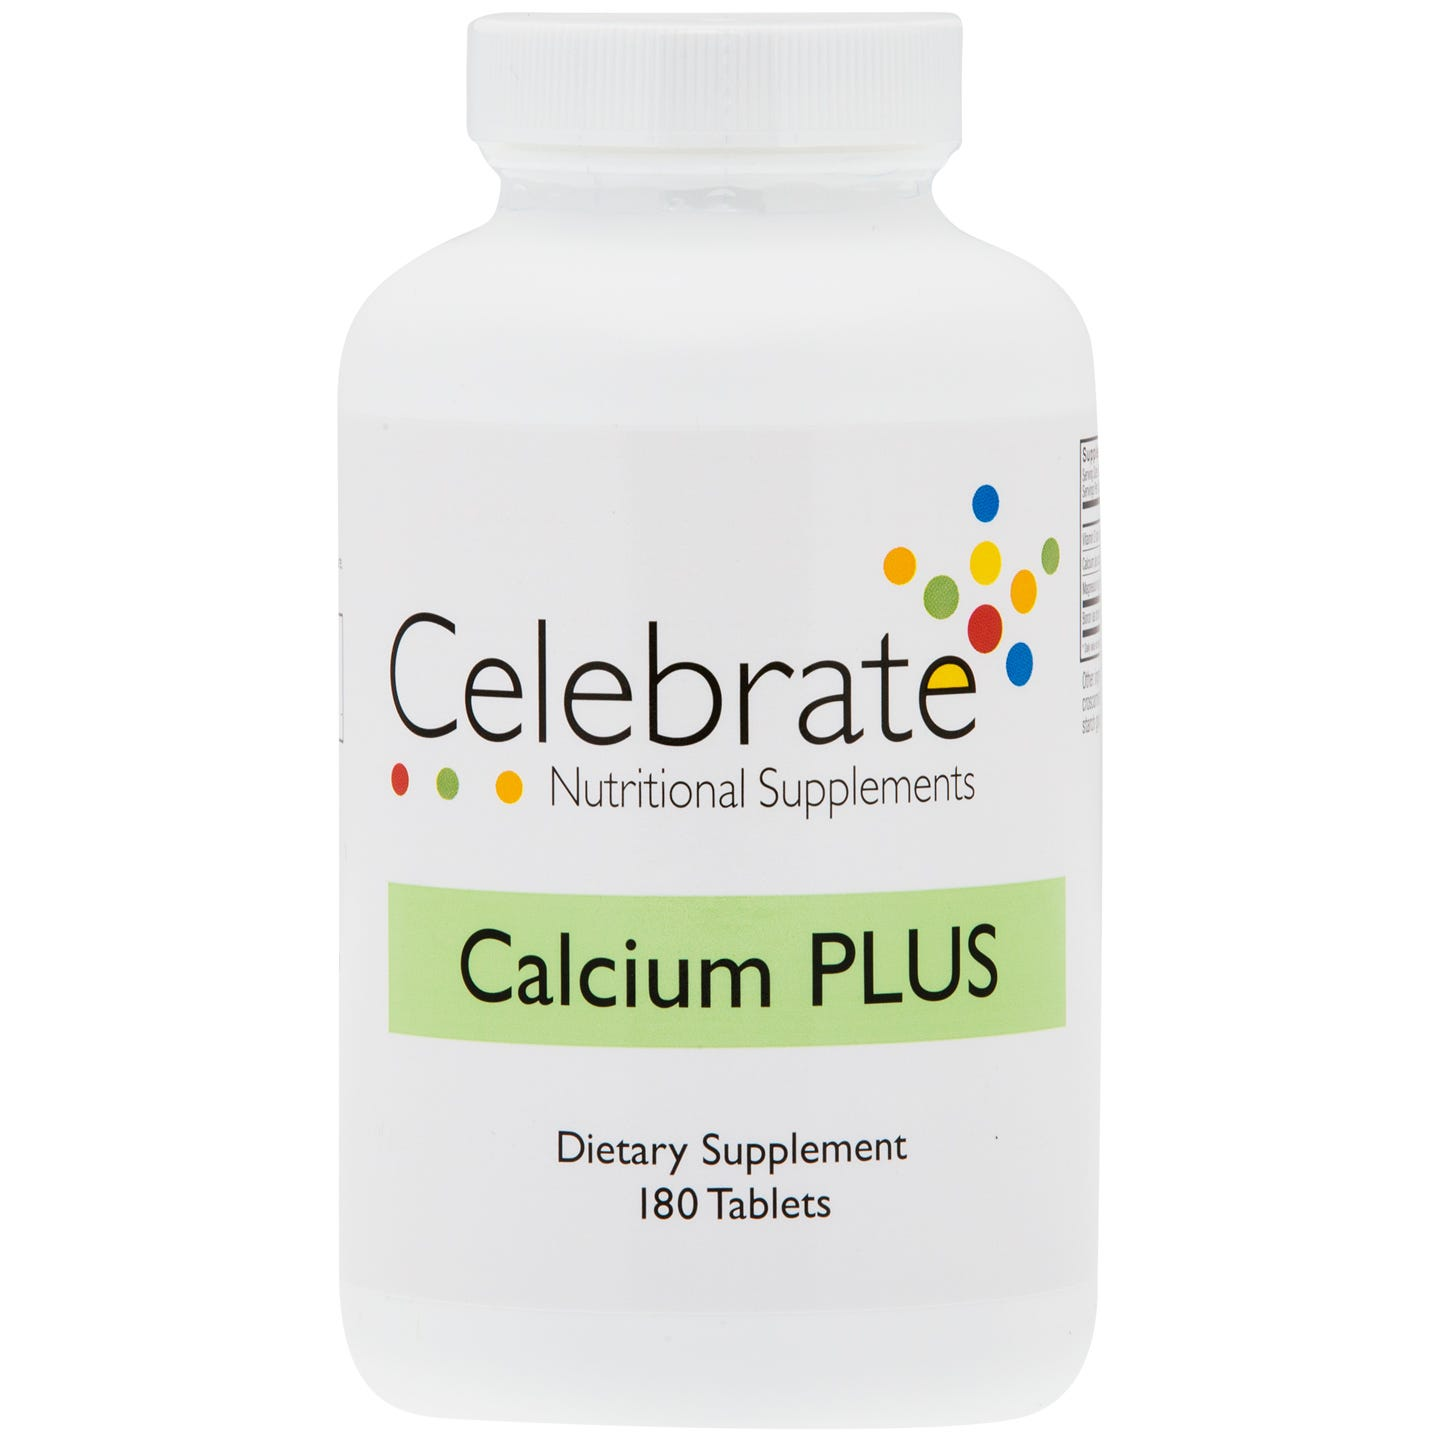 Calcium PLUS Tablet (180 ct) - Celebrate - Rapid Diet Weight Loss Products Shop